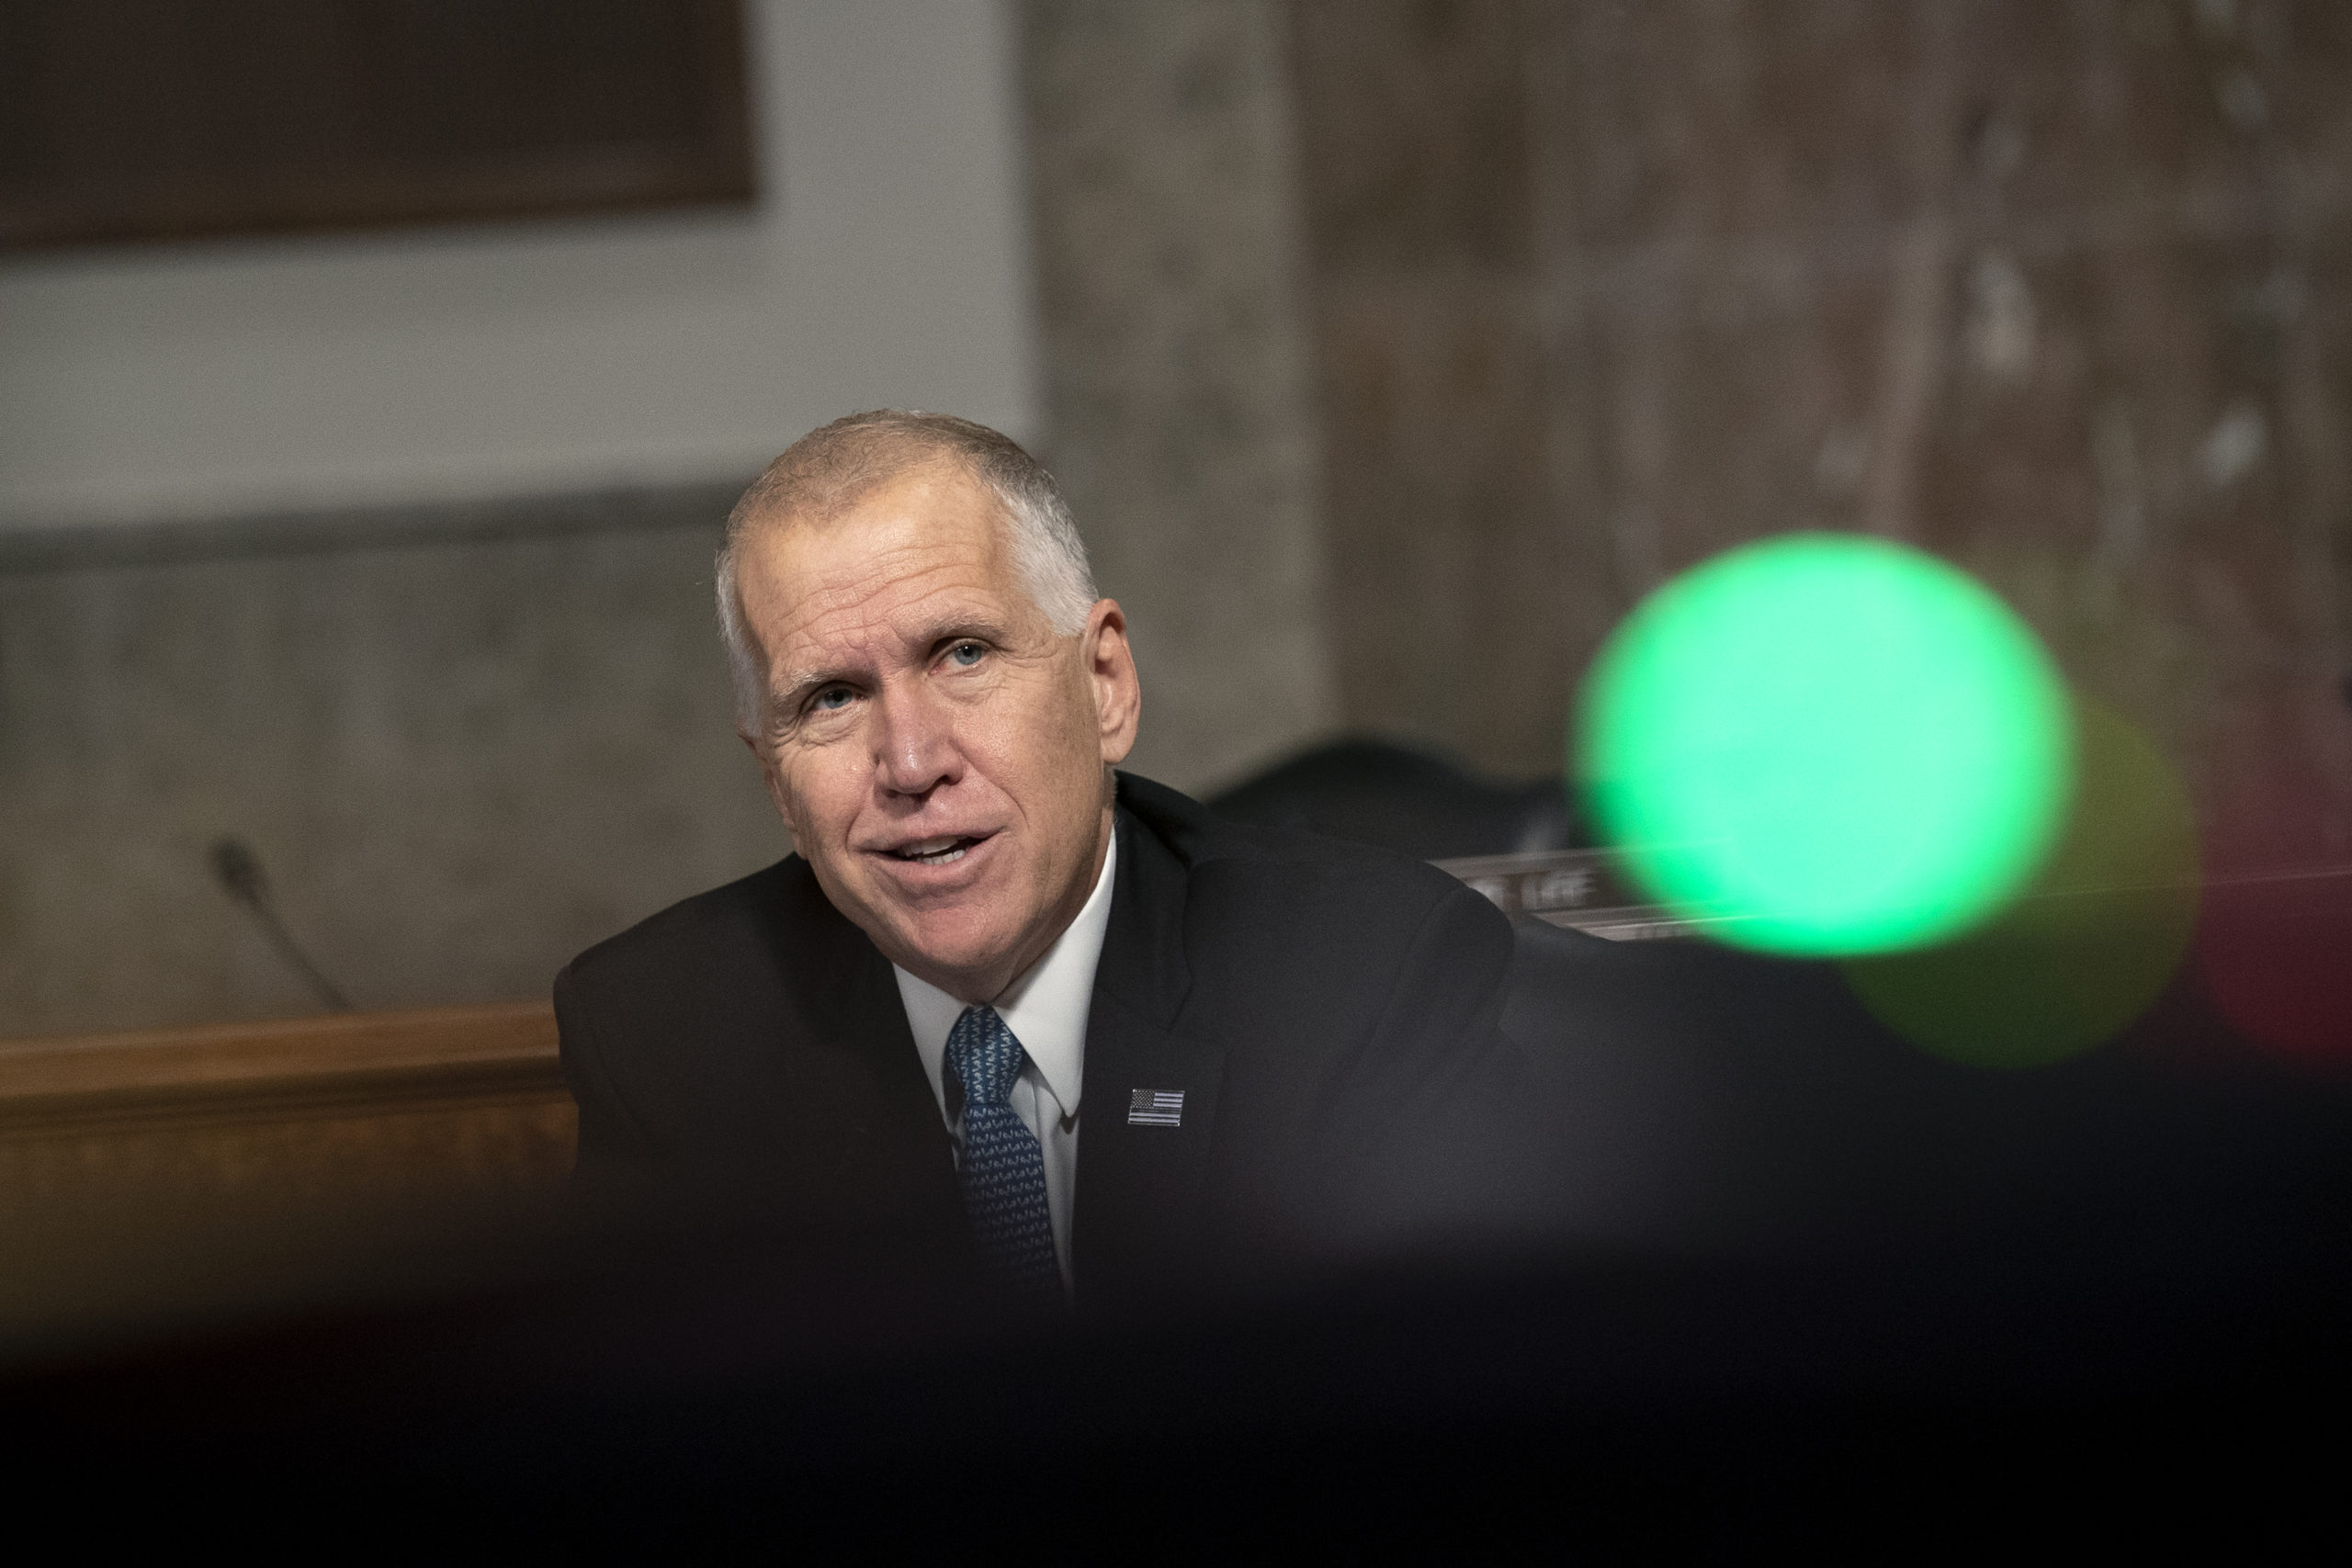 WASHINGTON, DC - SEPTEMBER 30: Sen. Thom Tillis (R-NC) speaks during a Senate Judiciary Committee hearing on Wednesday, September 30, 2020 on Capitol Hill in Washington, DC. The committee is exploring the FBI's investigation of the 2016 Trump campaign and Russian election interference. (Photo by Stefani Reynolds-Pool/Getty Images)